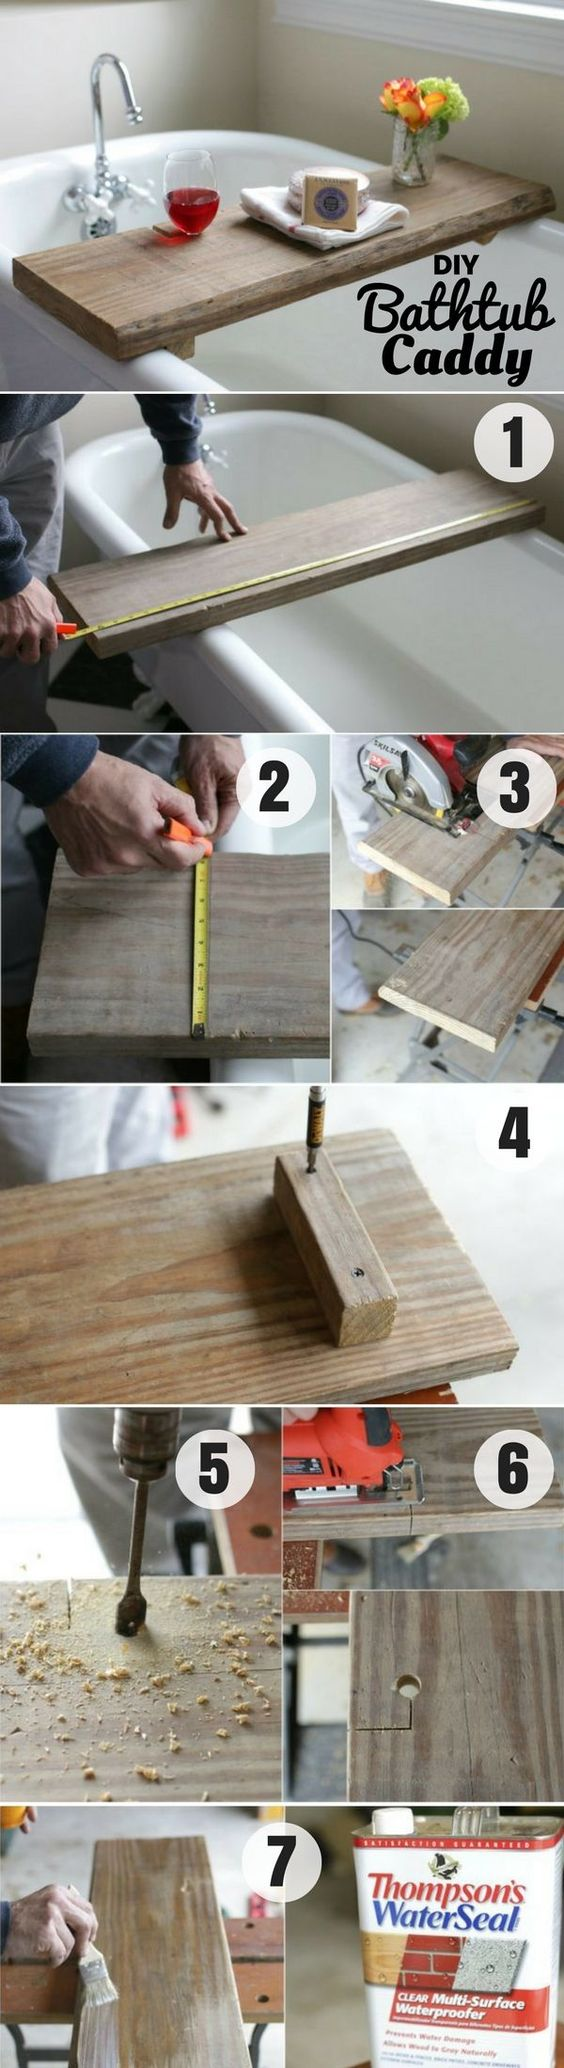 2. DIY Bathtub Caddy